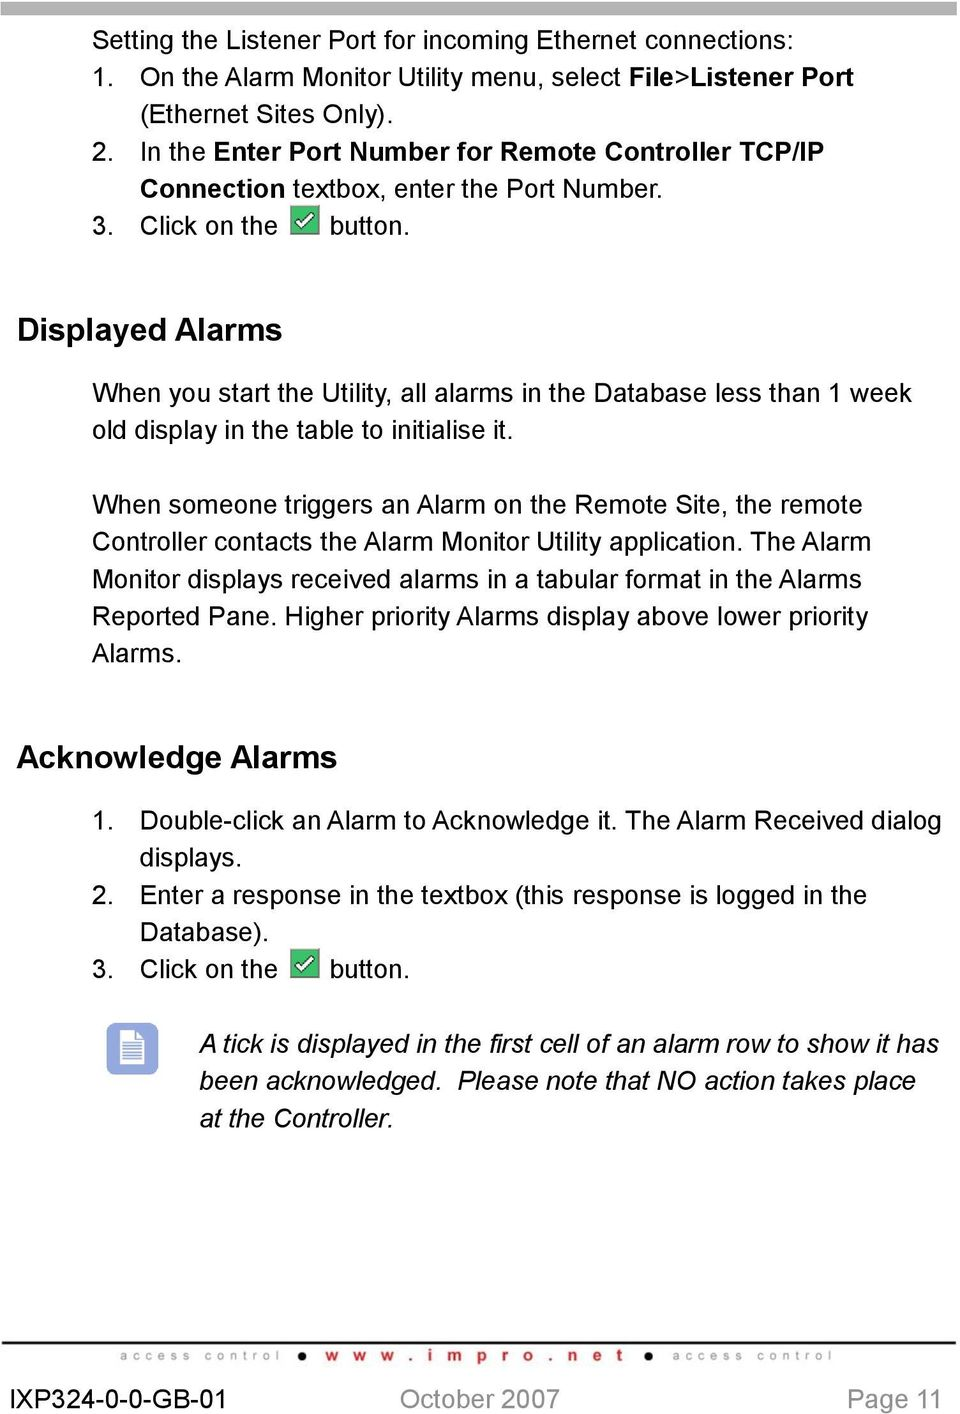 Displayed Alarms When you start the Utility, all alarms in the Database less than 1 week old display in the table to initialise it.